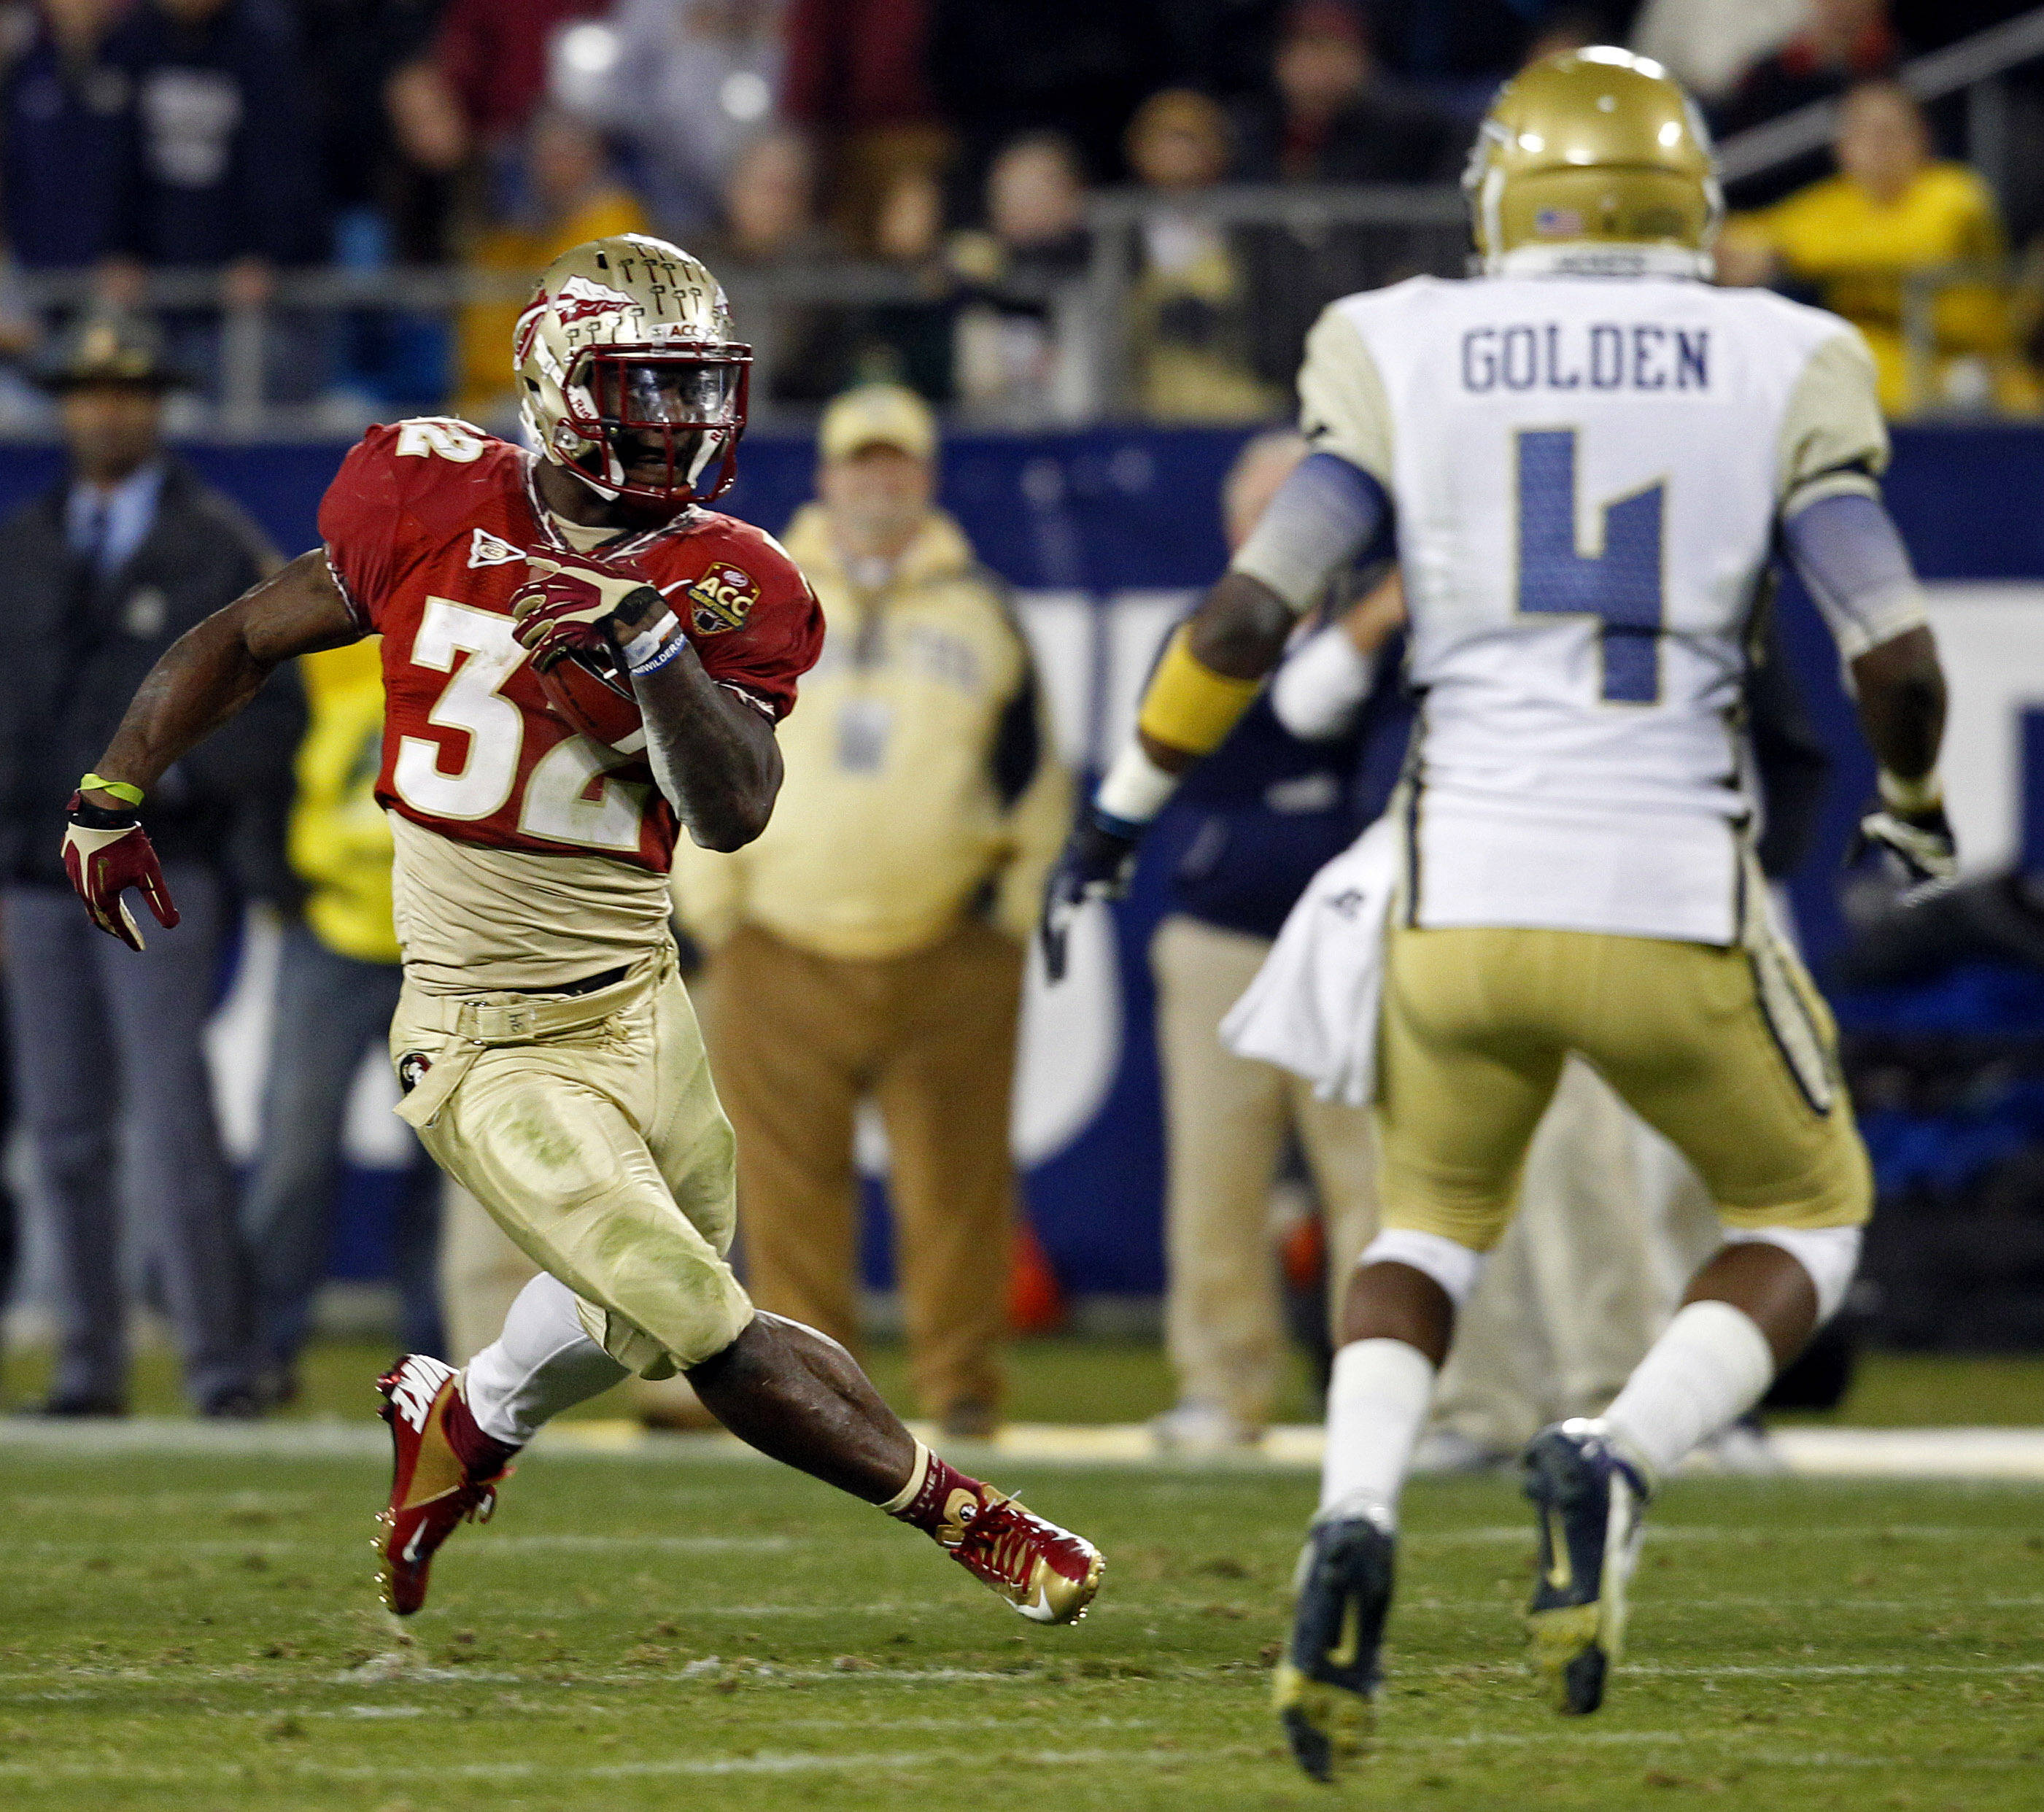 Florida State's James Wilder Jr. (32) carries as Georgia Tech's Jamal Golden (4) defends during the second half of the Atlantic Coast Conference championship NCAA college football game in Charlotte, N.C., Saturday, Dec. 1, 2012. (AP Photo/Chuck Burton)